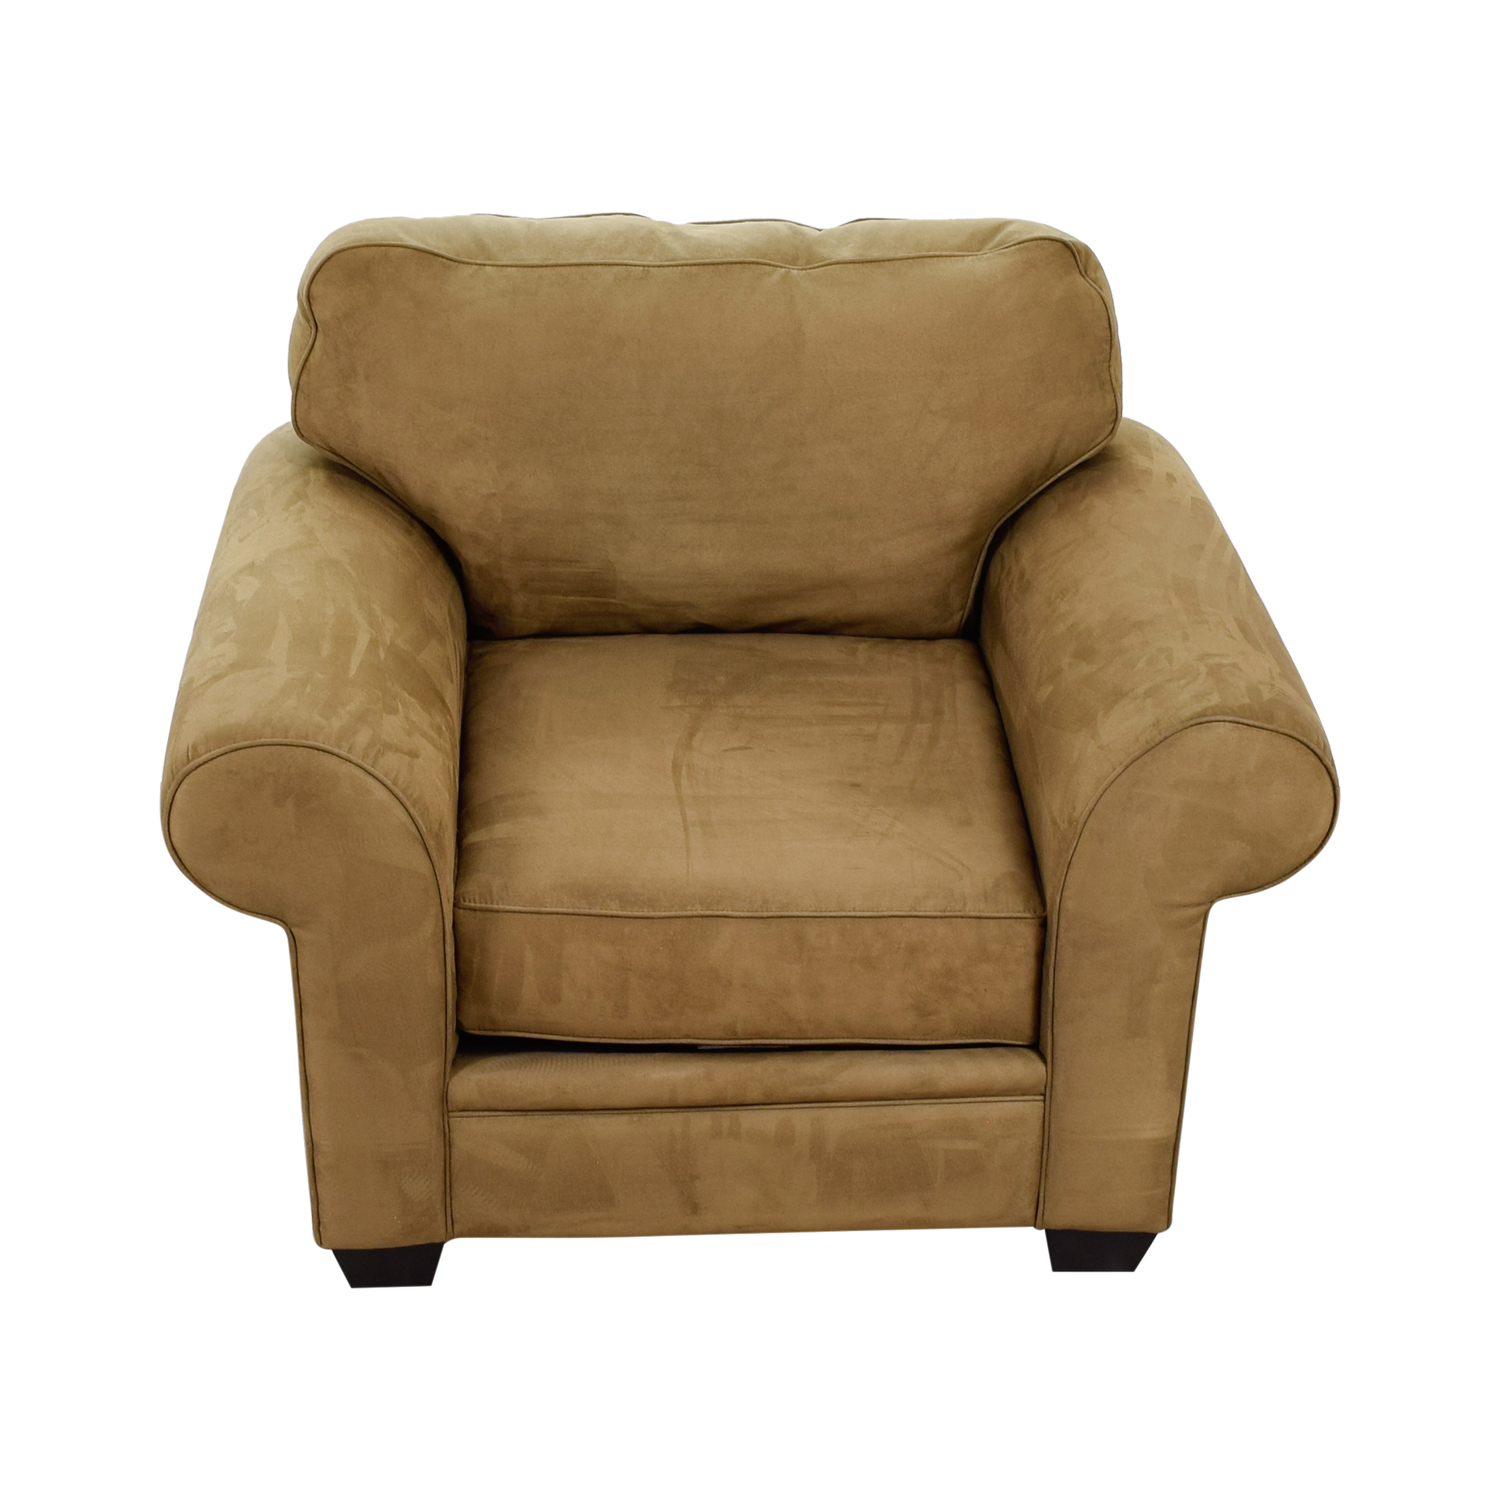 shop Macy's Tan Oversized Armchair Macy's